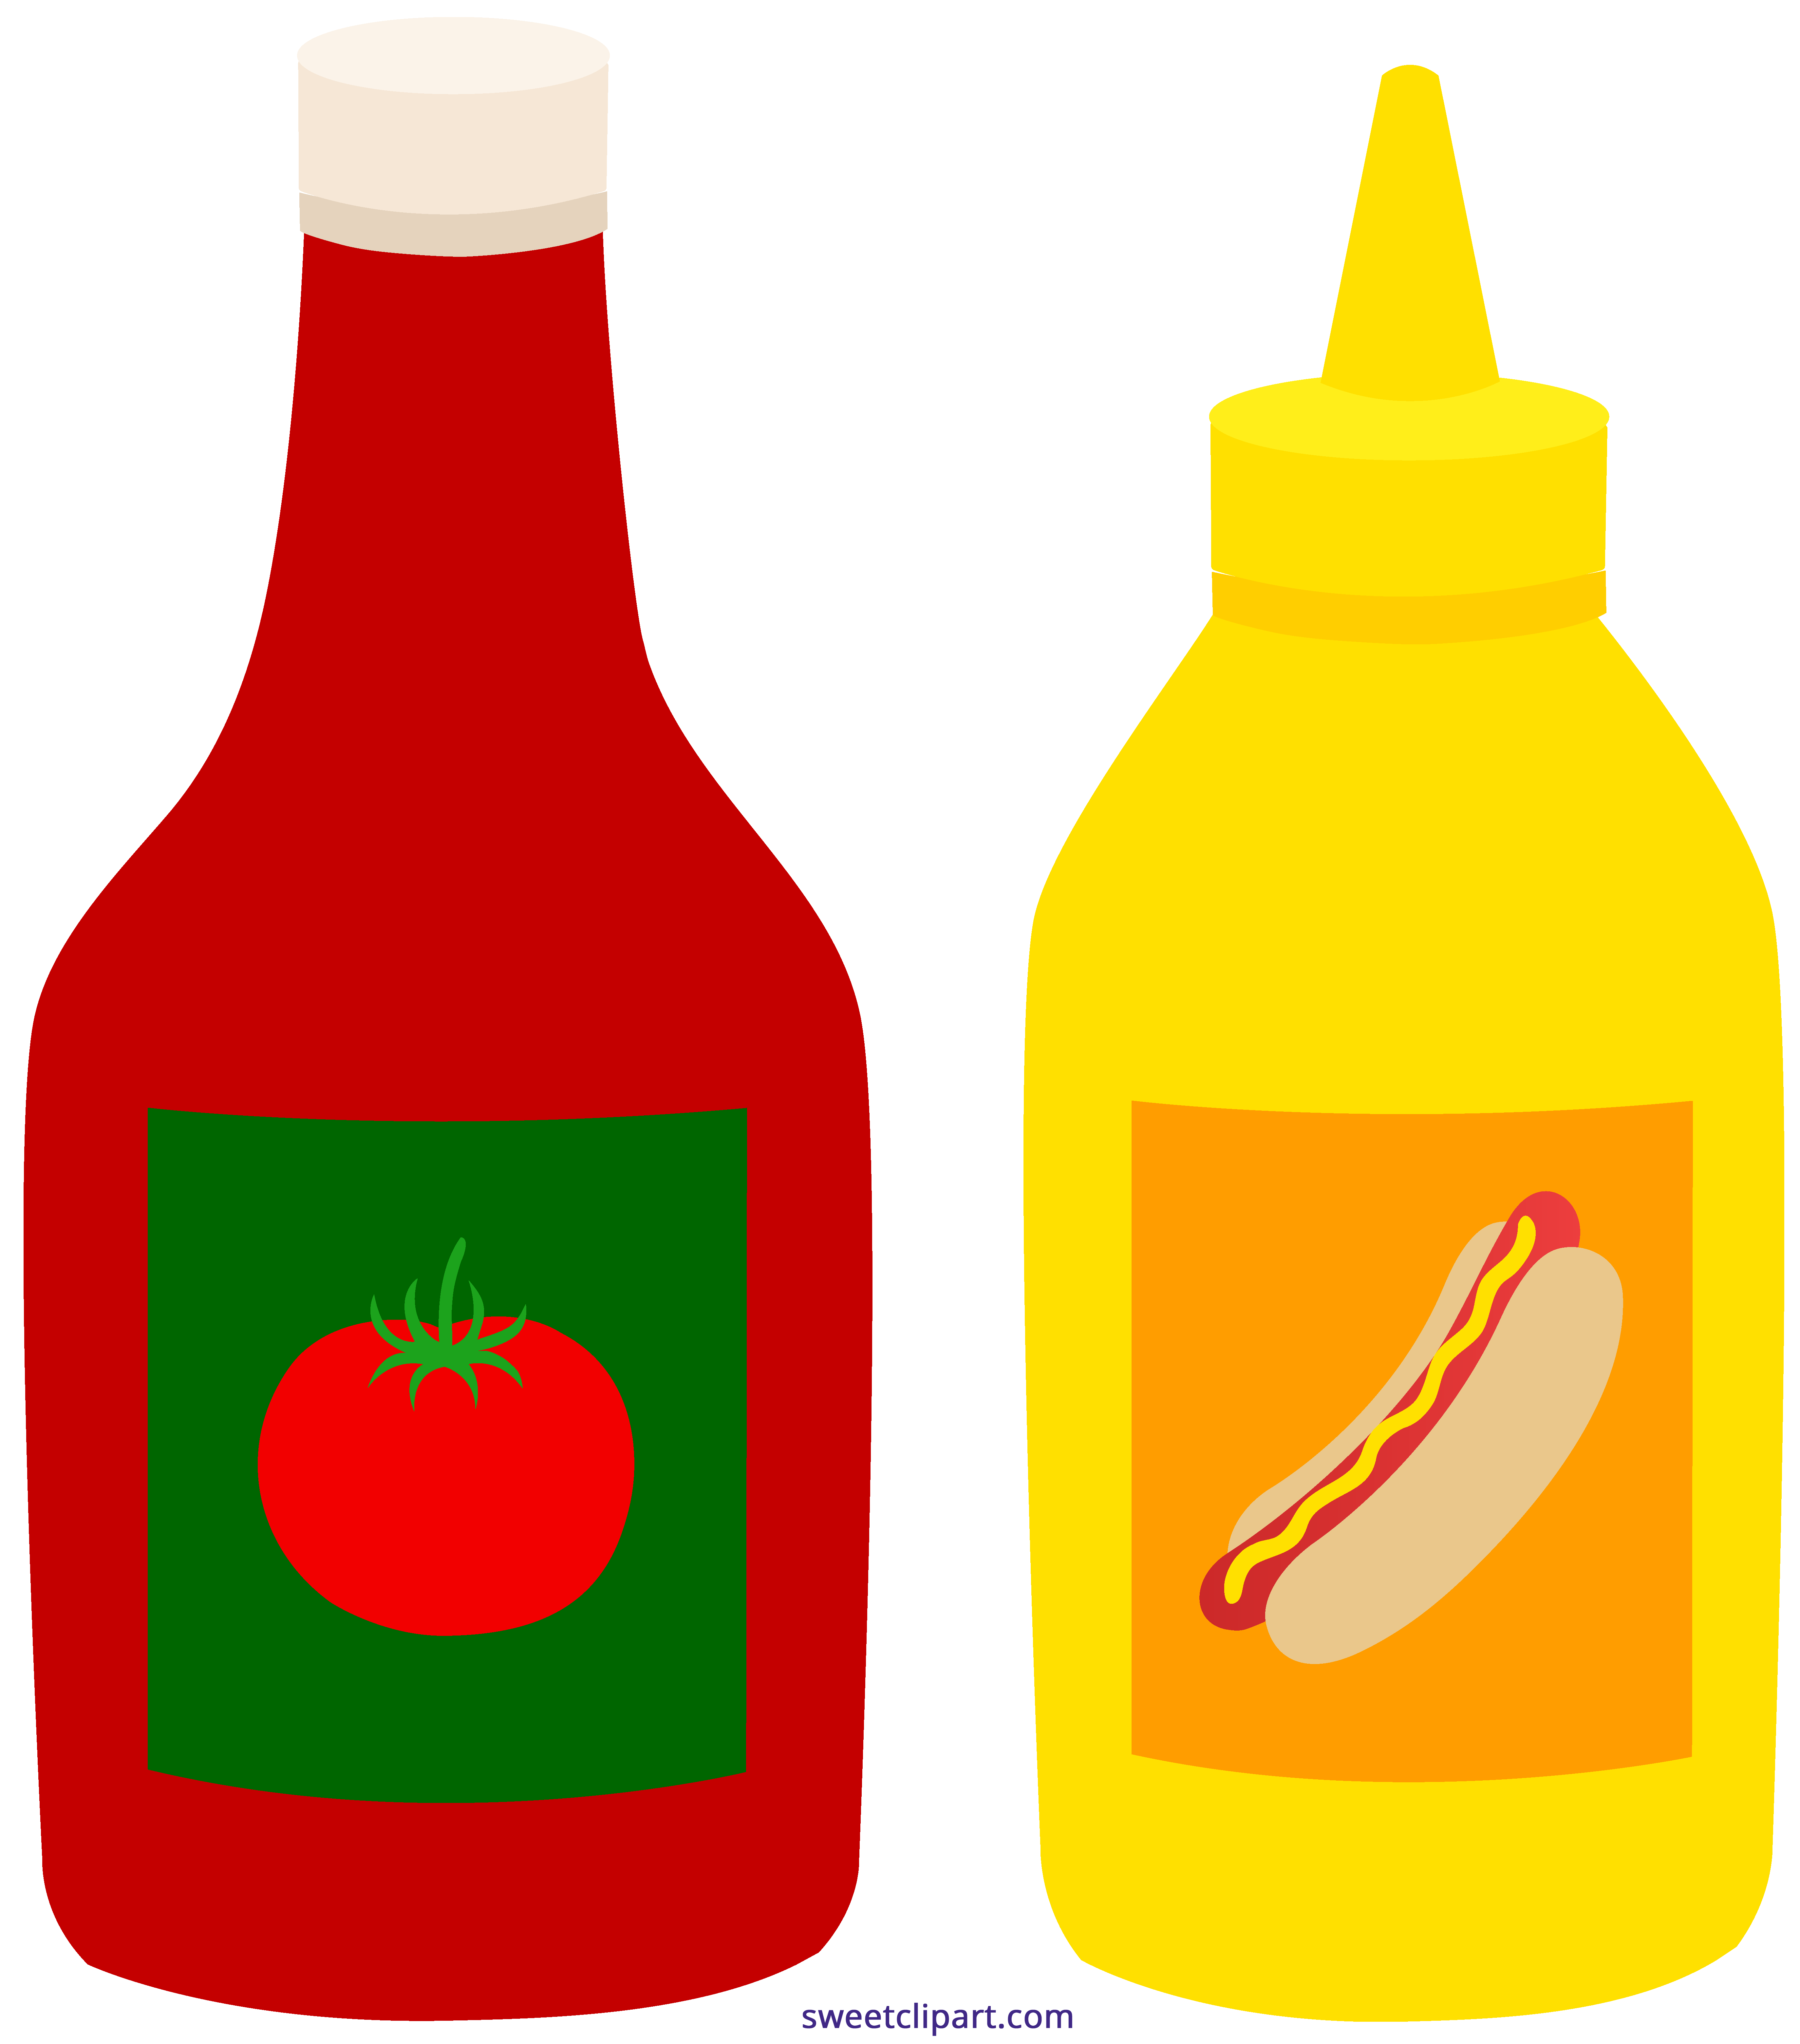 Clipart science bottle. Ketchup mustard bottles sweet